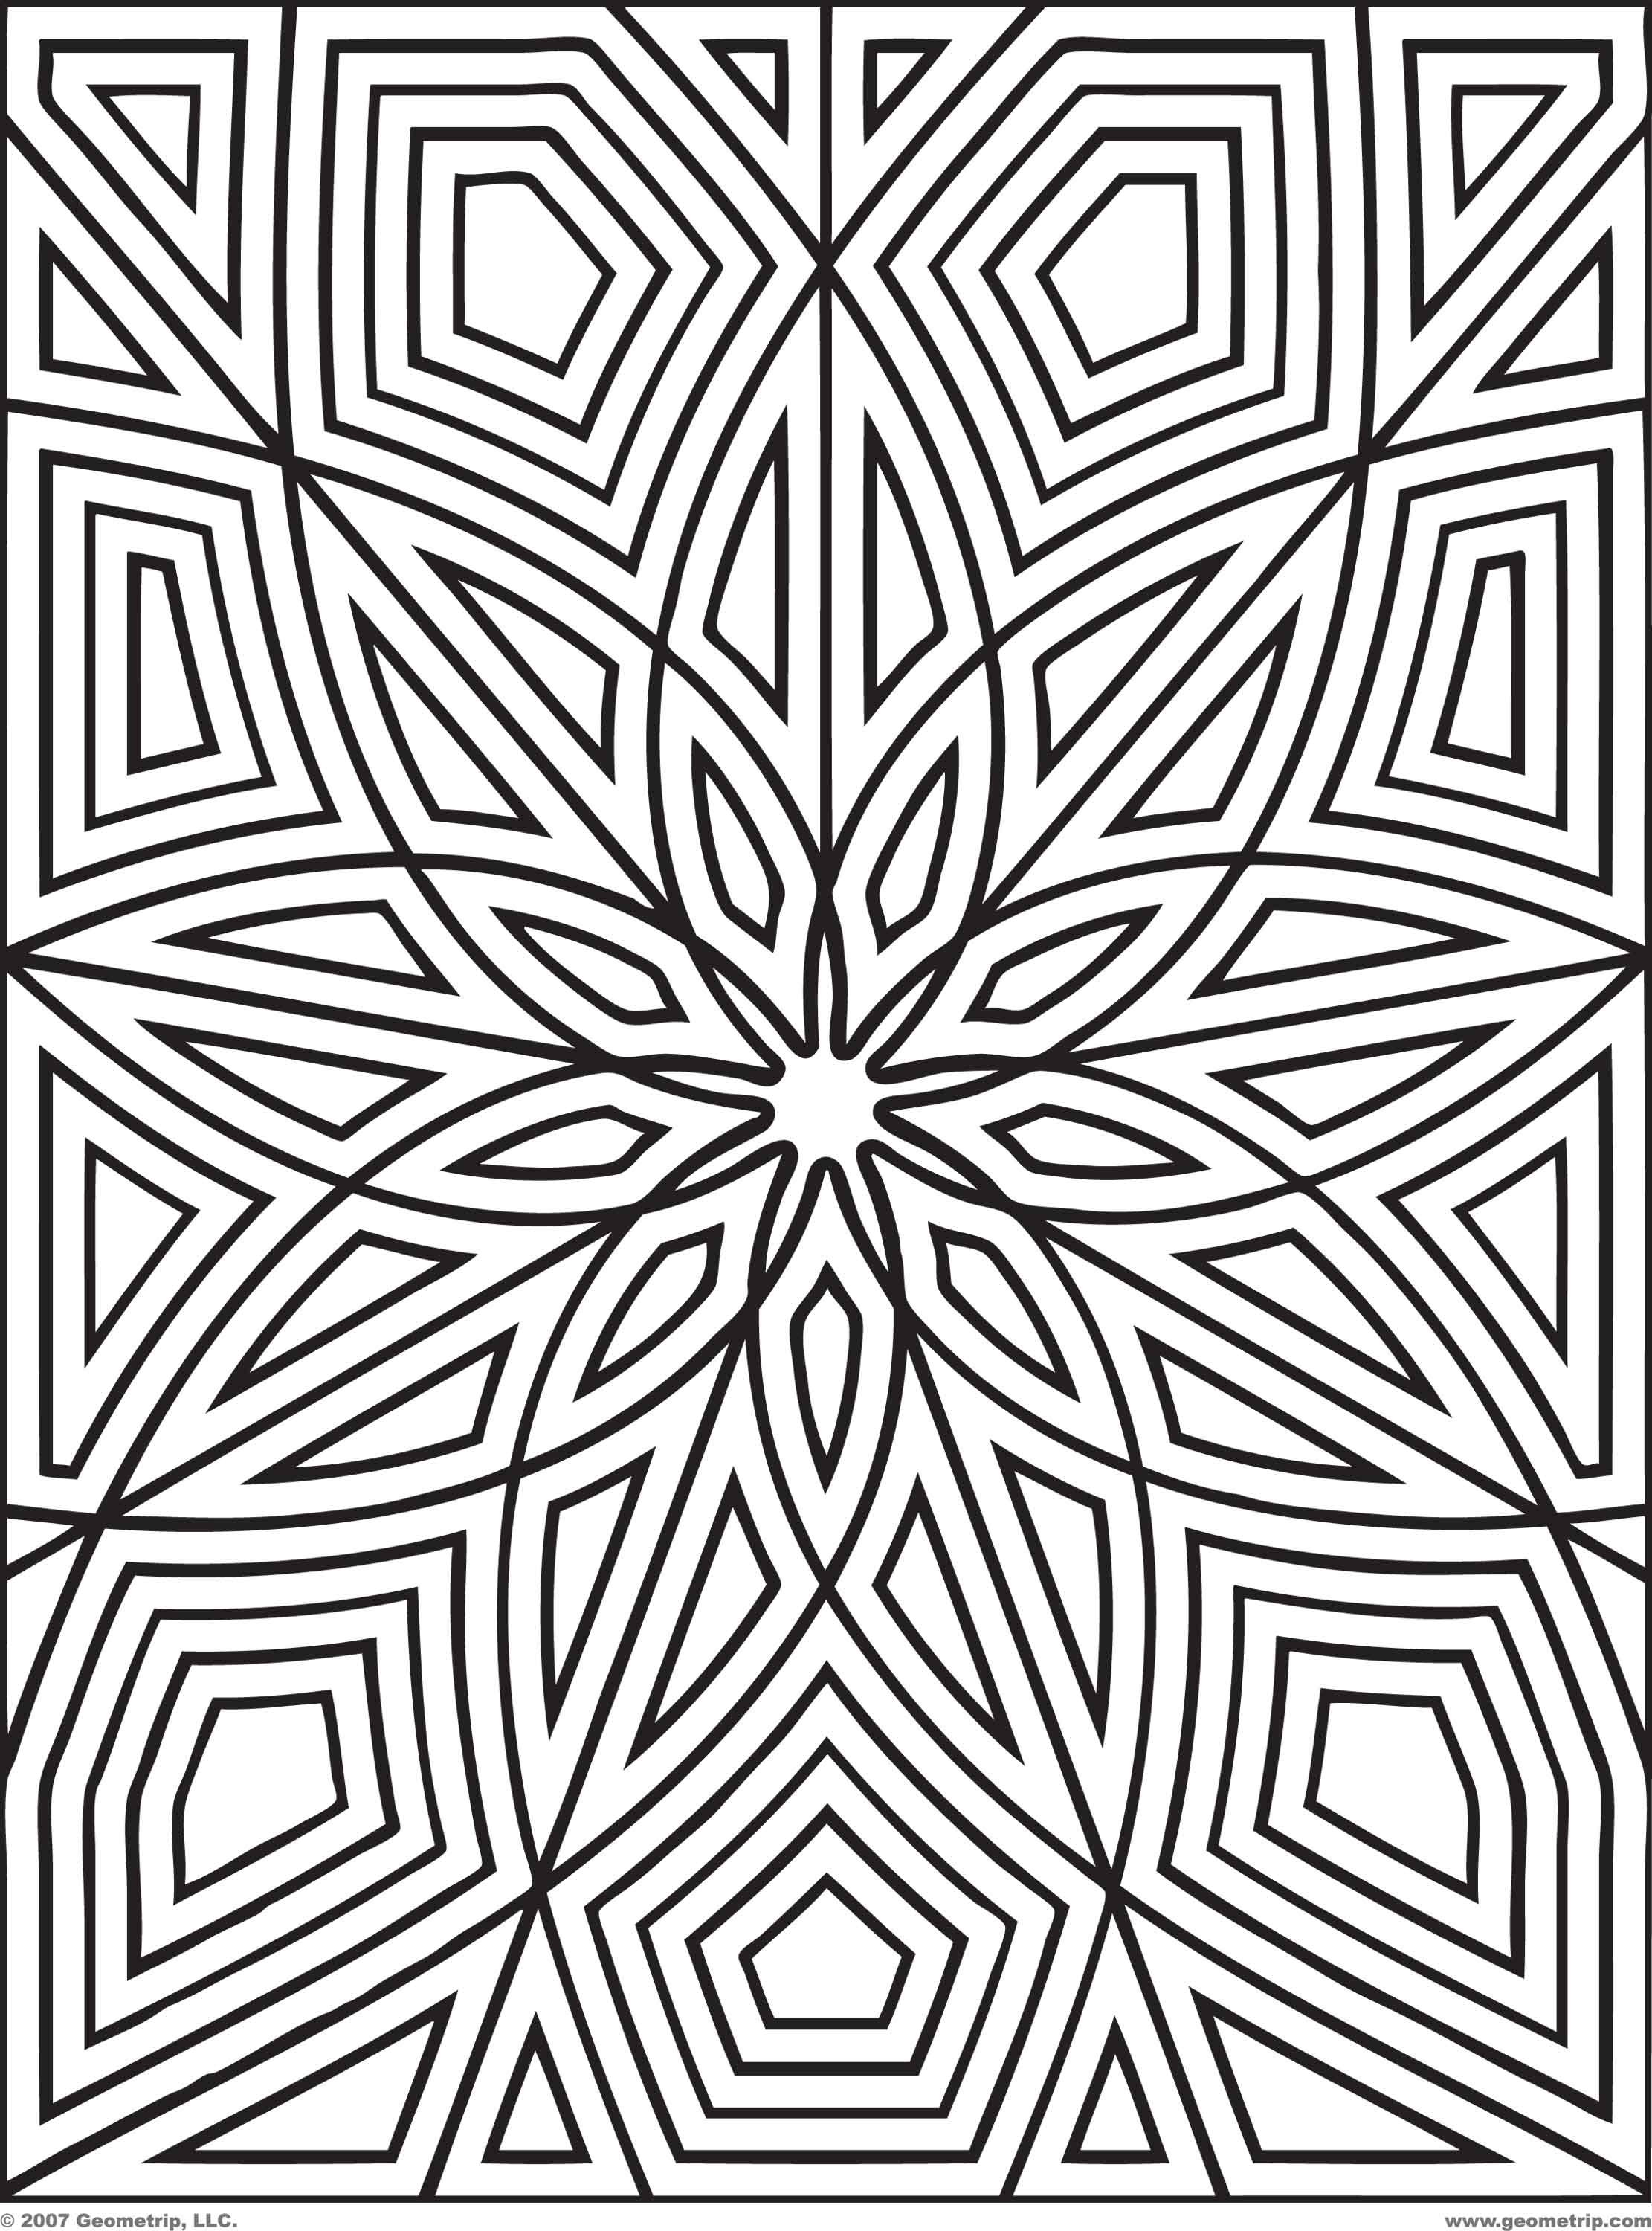 Design Coloring Pages Free Printable - High Quality Coloring Pages